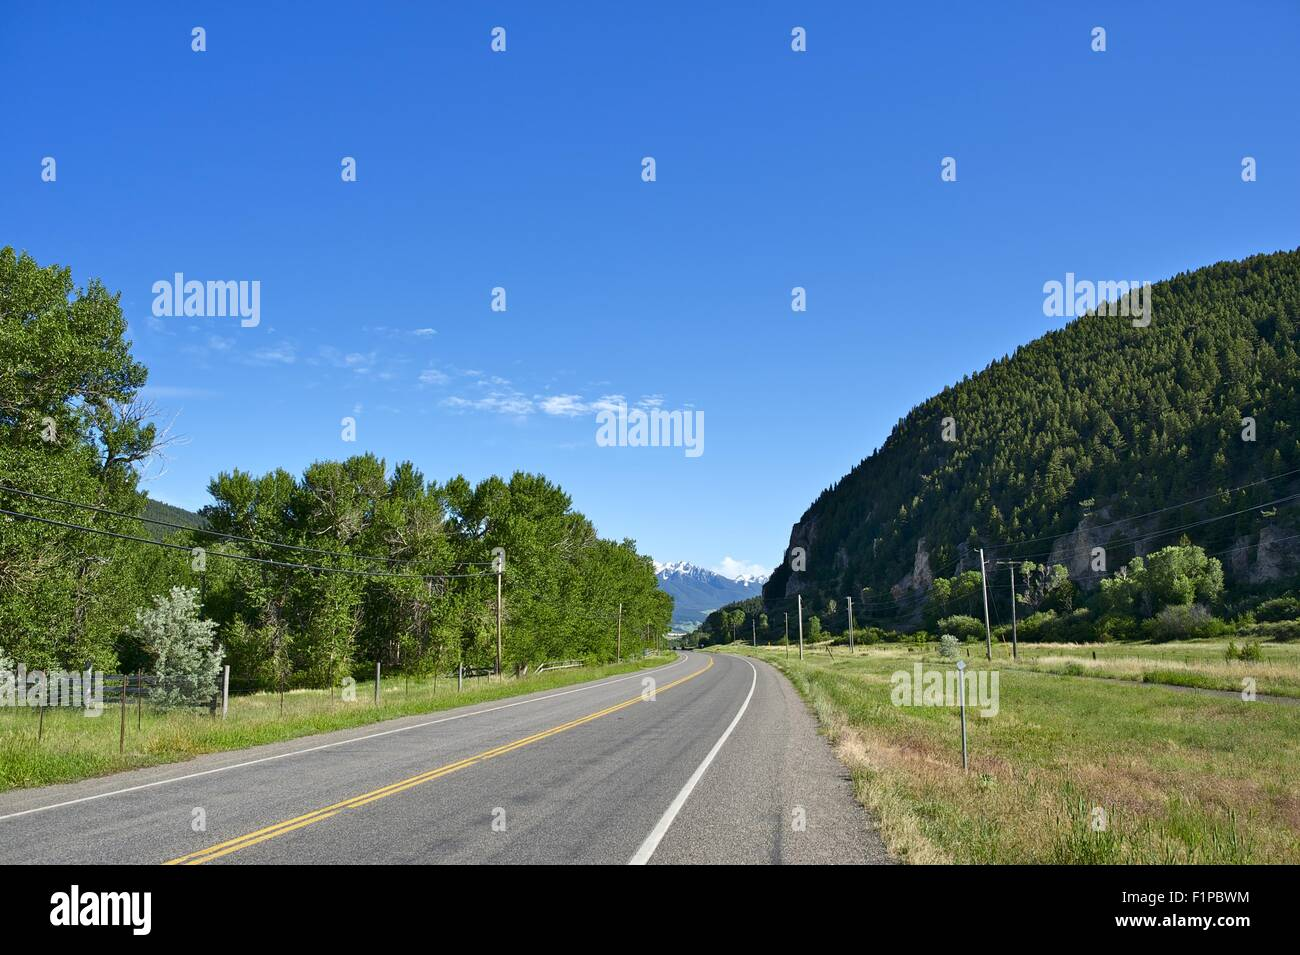 Livingston, Montana, USA Highway 89 to Gardiner and Yellowstone National Park. Summer in Livingston, MT. - Stock Image